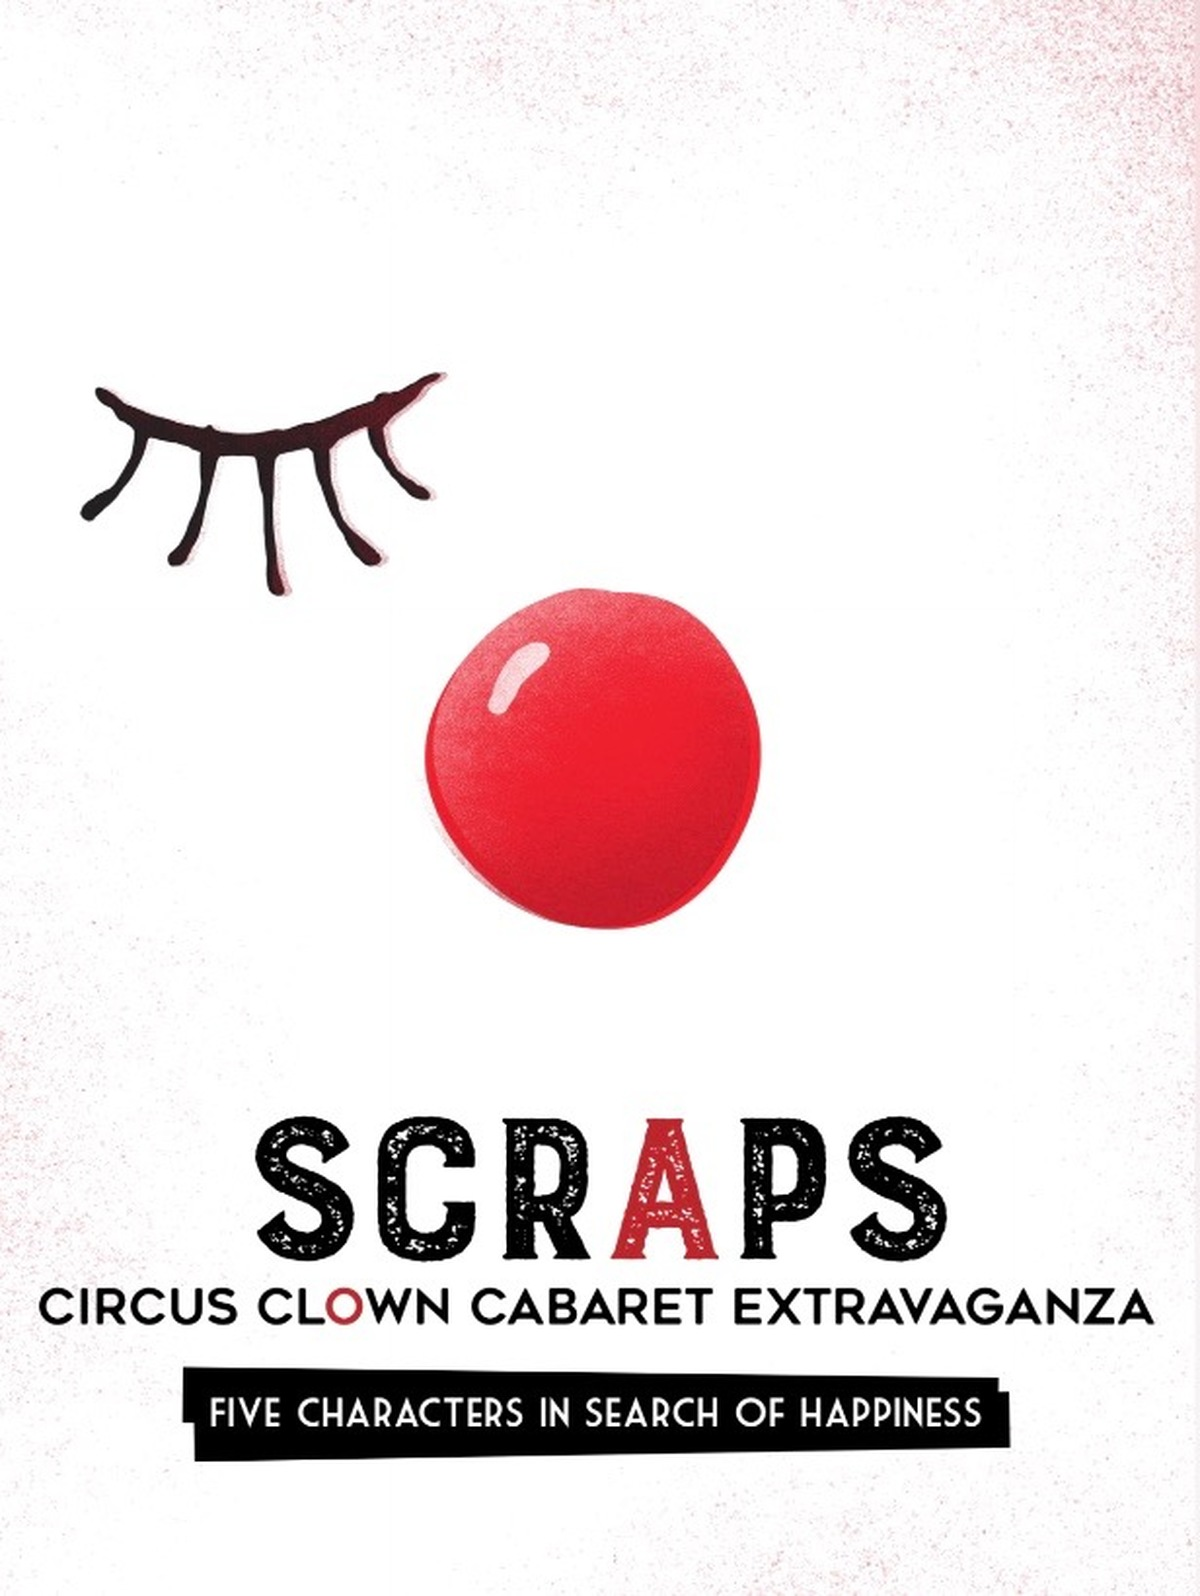 SCRAPS - clown cabaret extravaganza - Circus Events - CircusTalk